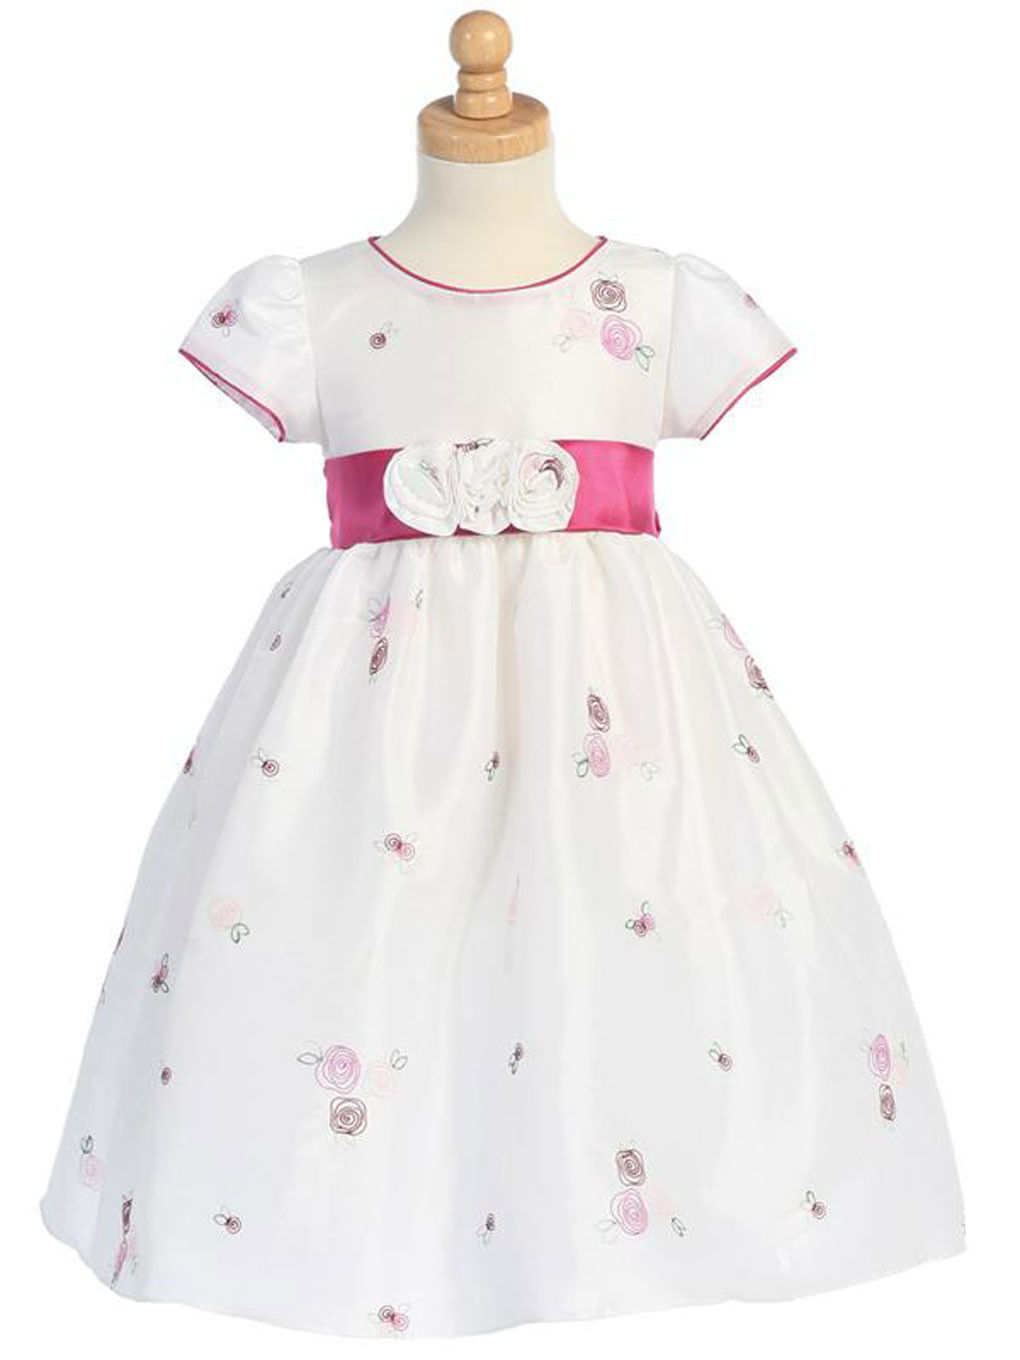 Gorgeous Boutique Pink White Embroidered Flower Girl Party Dress Lito USA - 4T